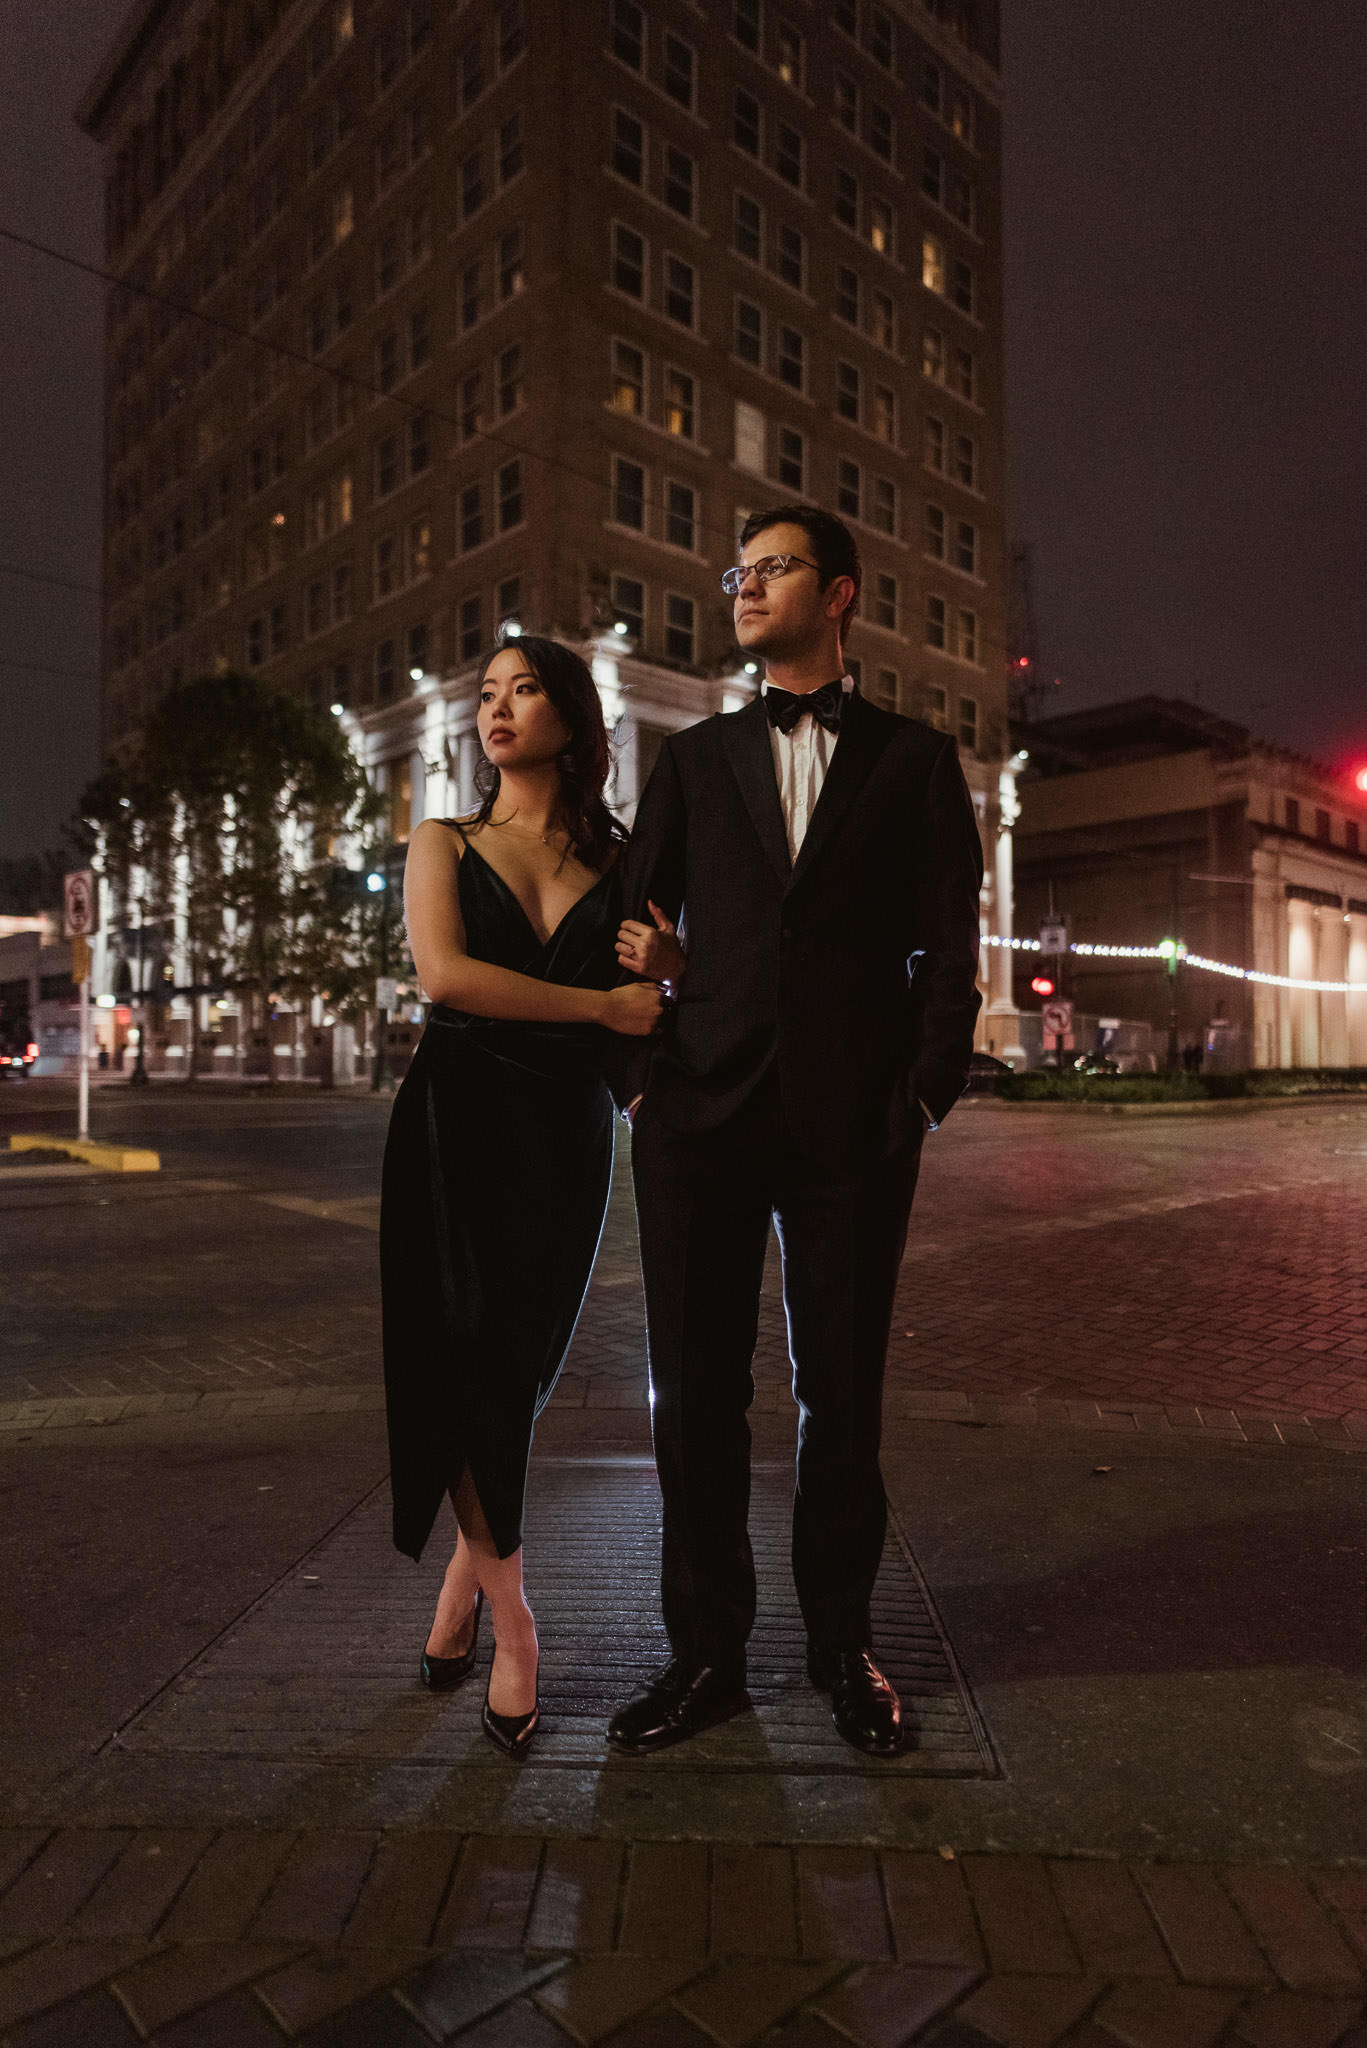 houston-downtown-mainstreet-urban-moody-engagement-photographer